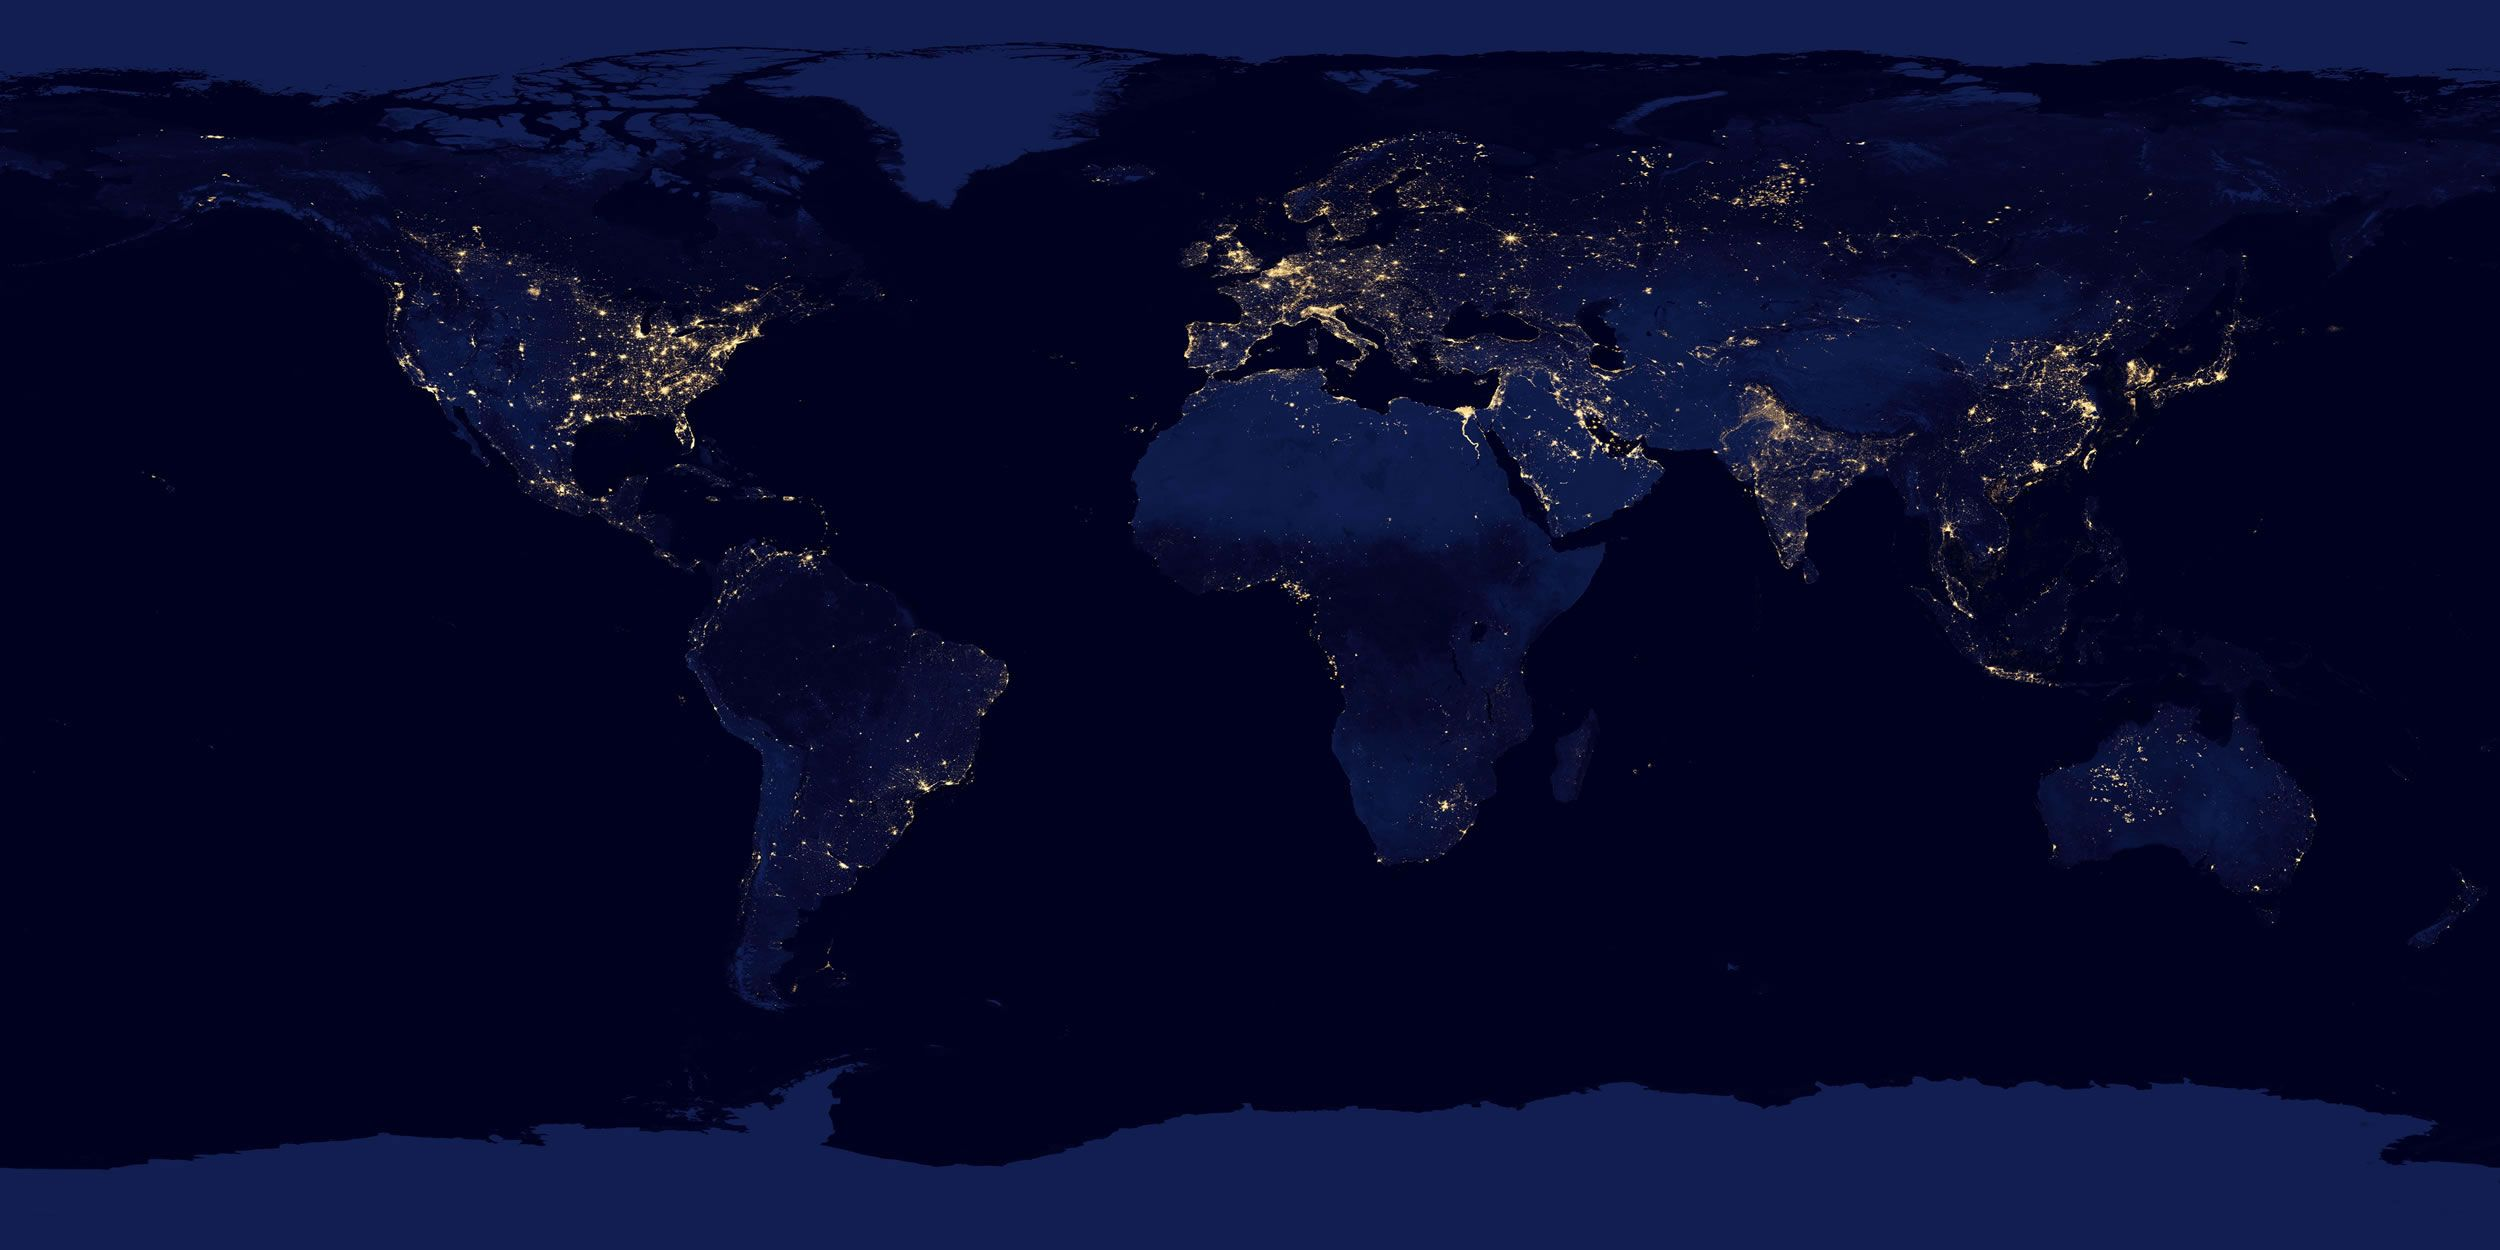 World Map Of Cities At Night